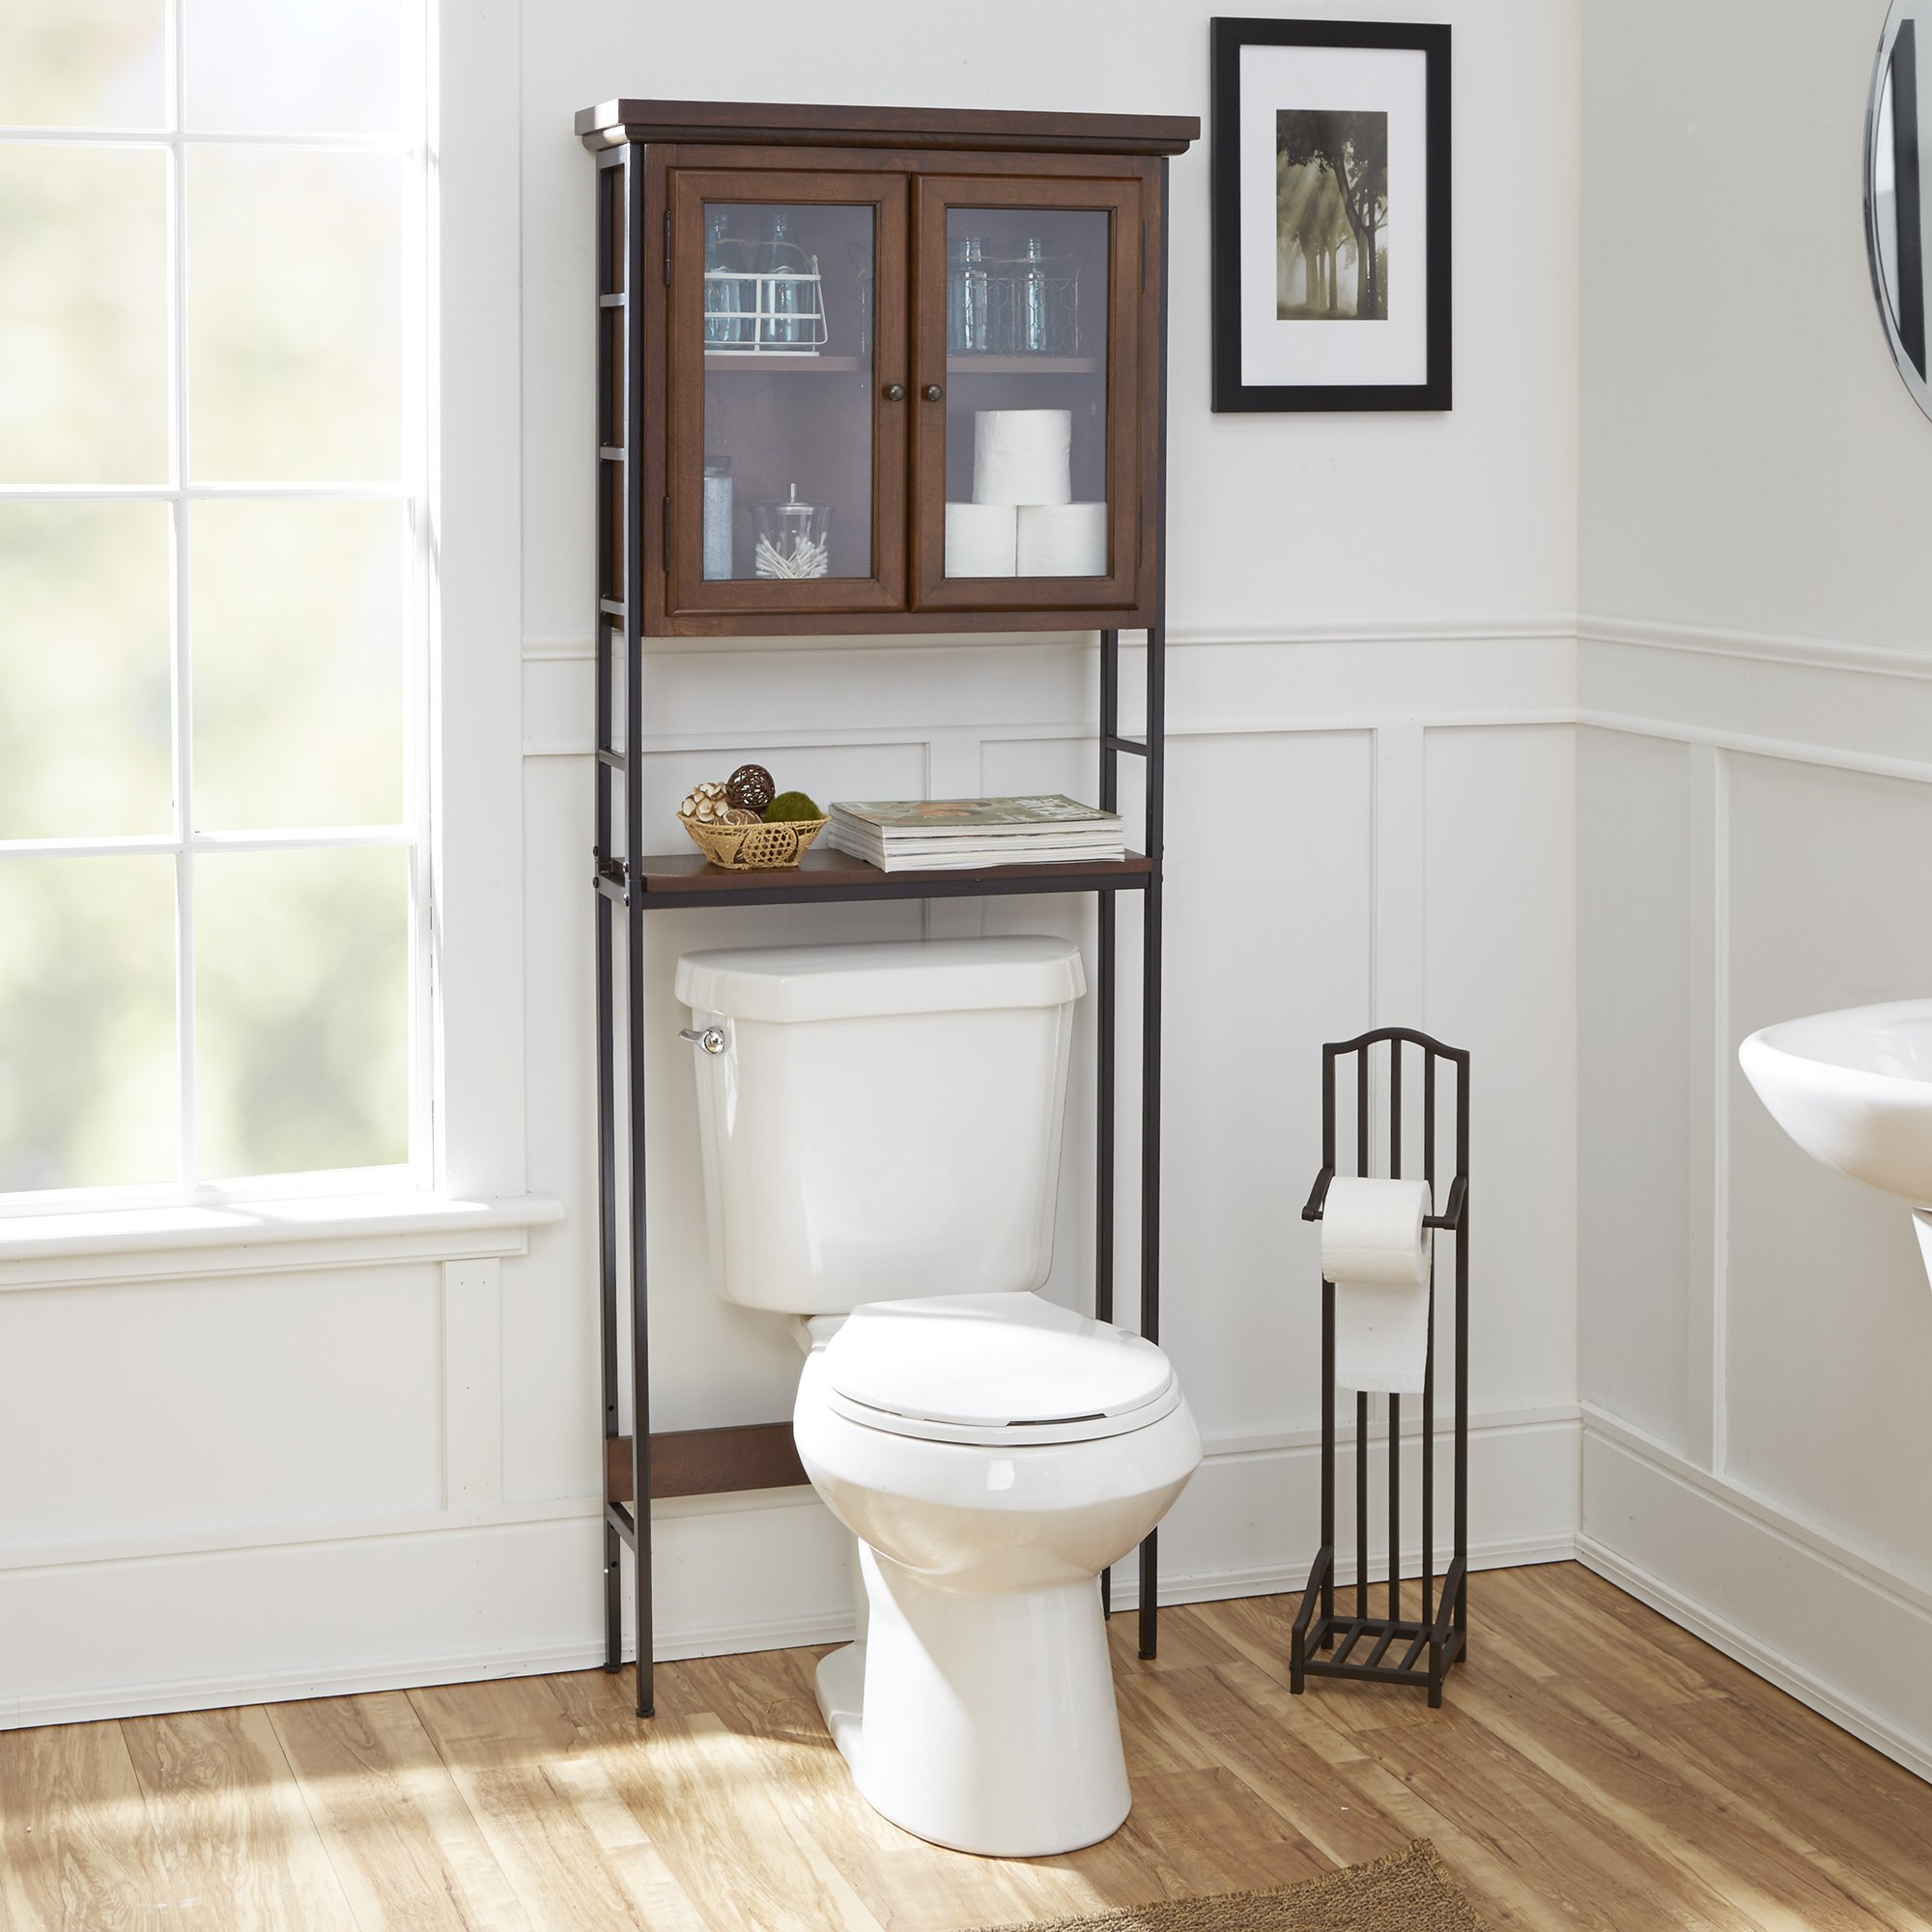 Silverwood Leighton Bathroom Collection 3-Tier Space Saver with Glass Doors 3, 67.5'' H by Silverwood (Image #2)